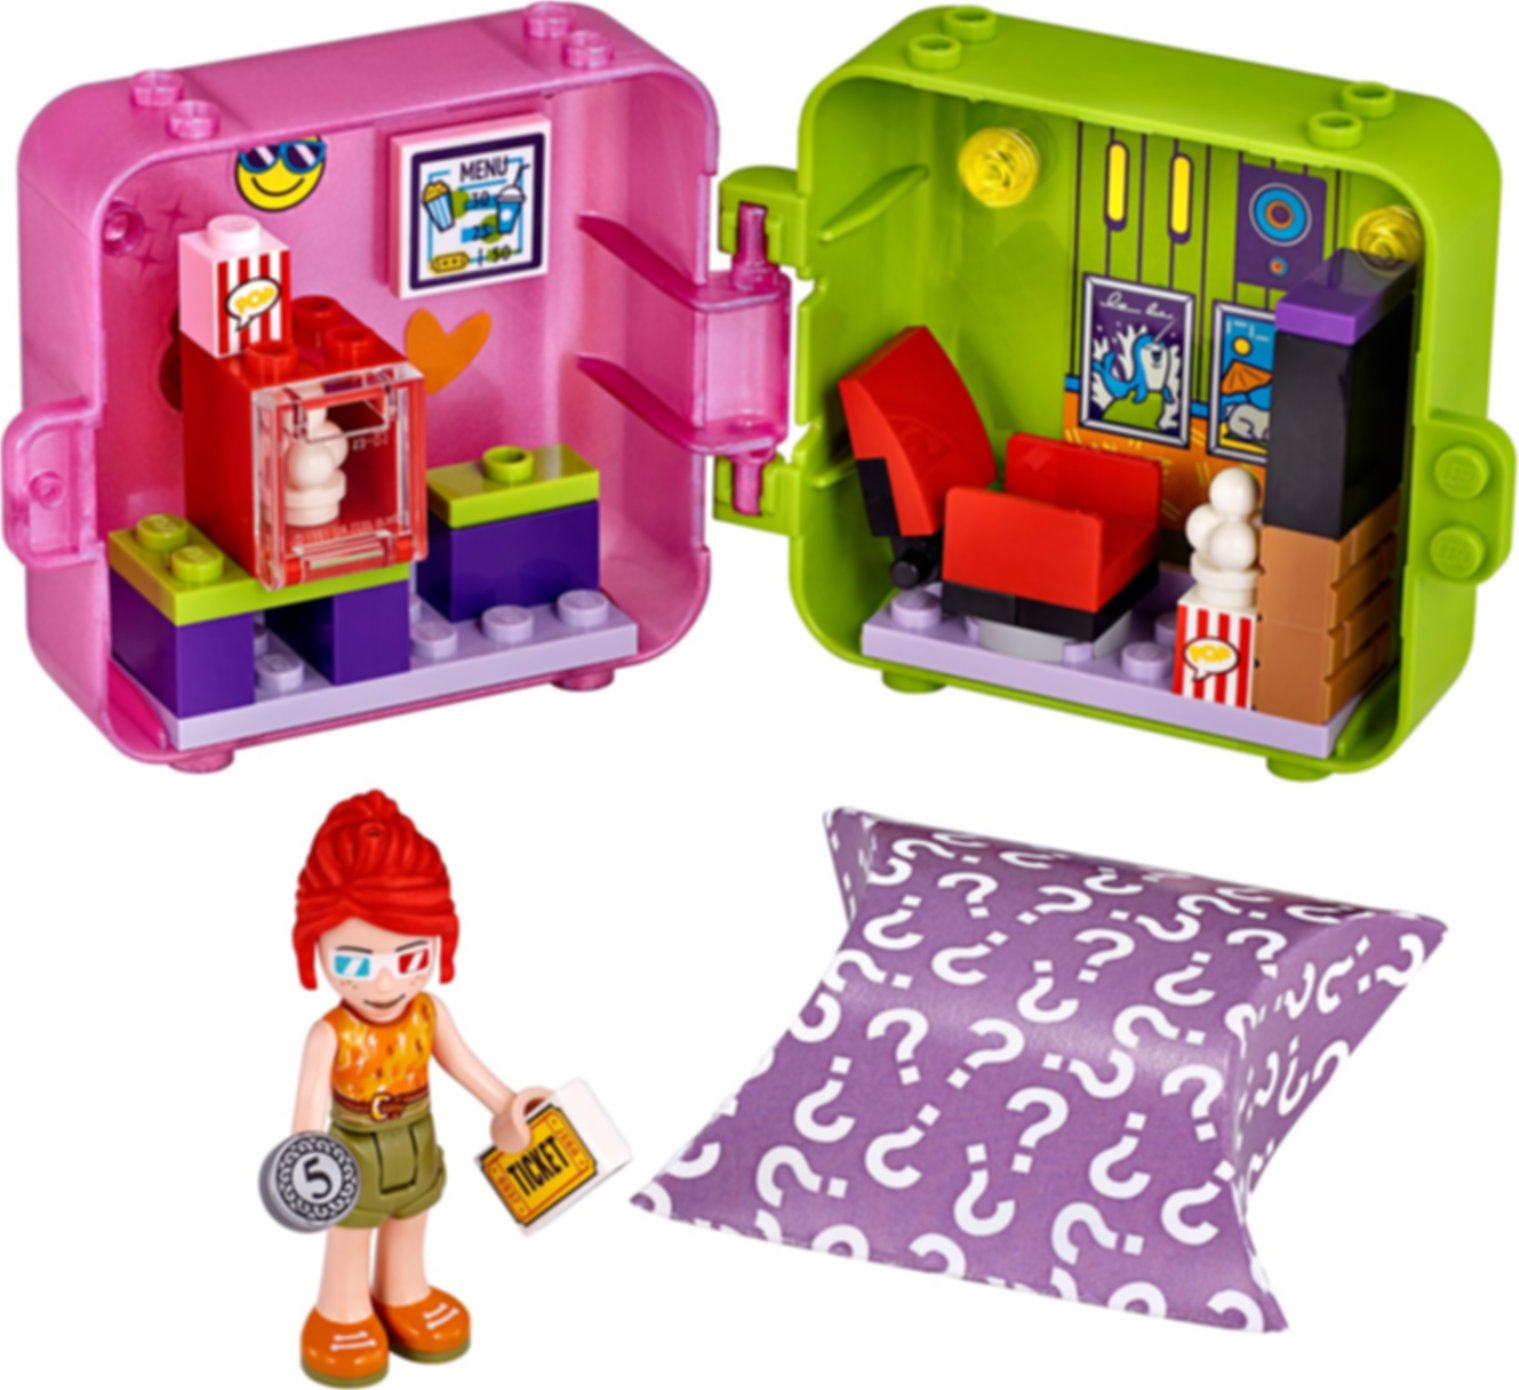 Mia's Shopping Play Cube components